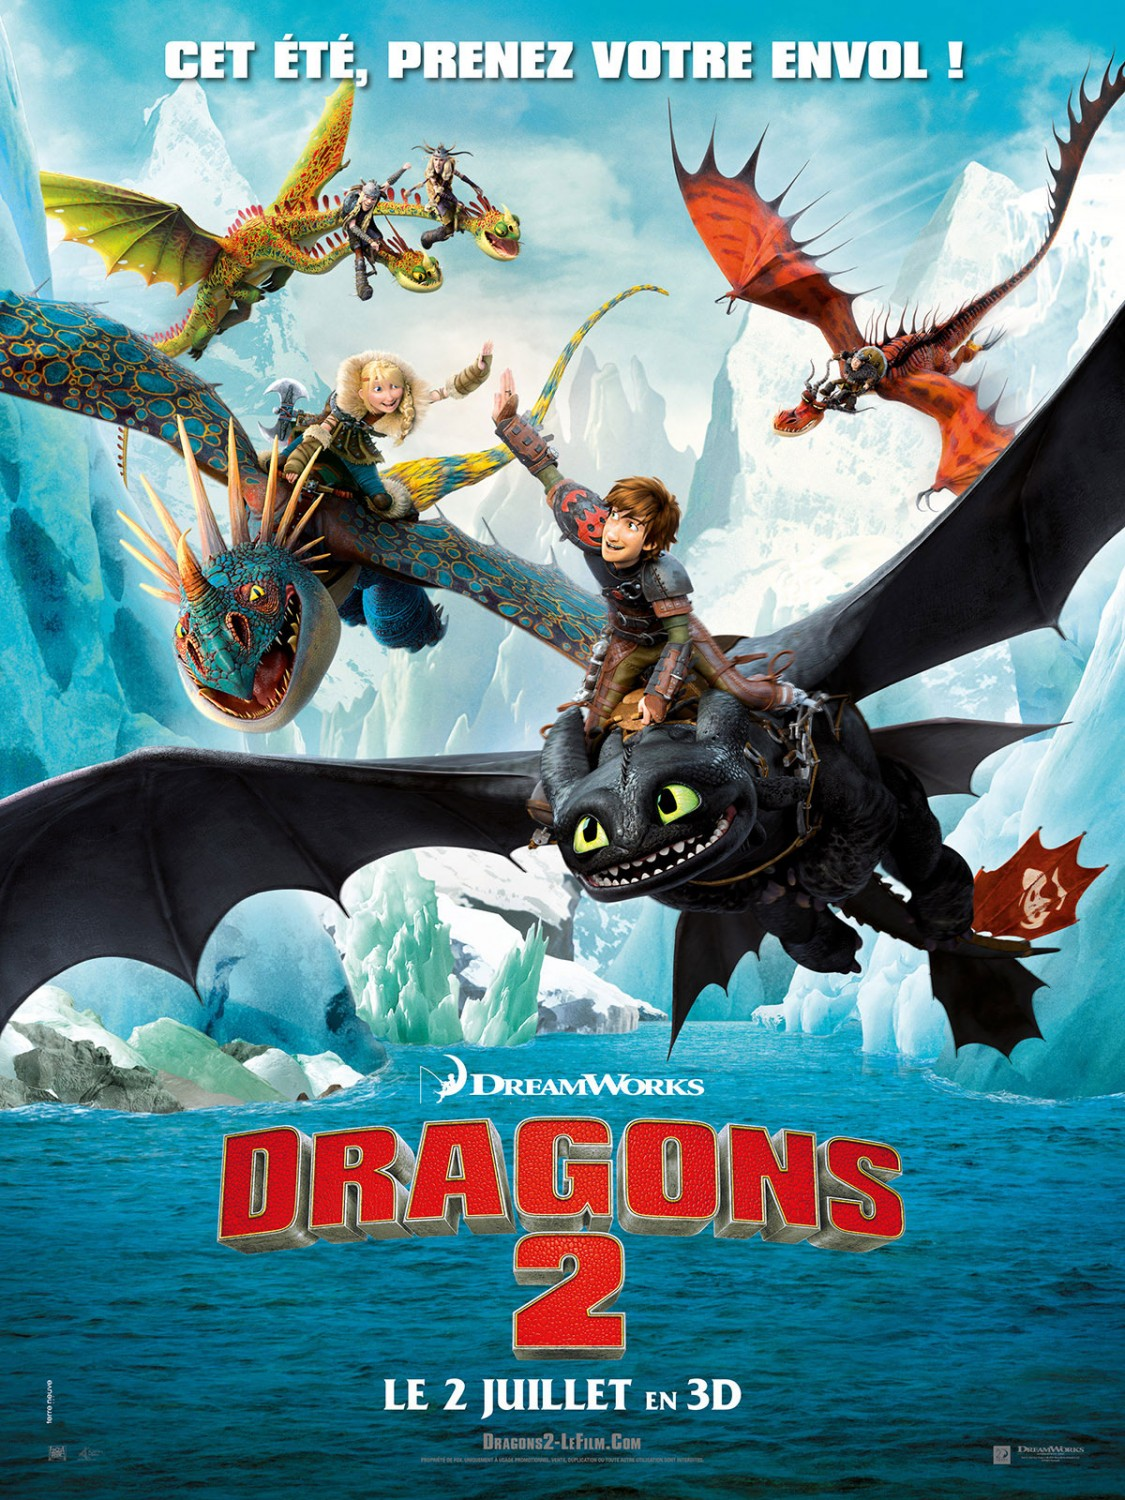 How to Train Your Dragon 2-Official Poster Banner PROMO XLG-11JUNHO2014-03